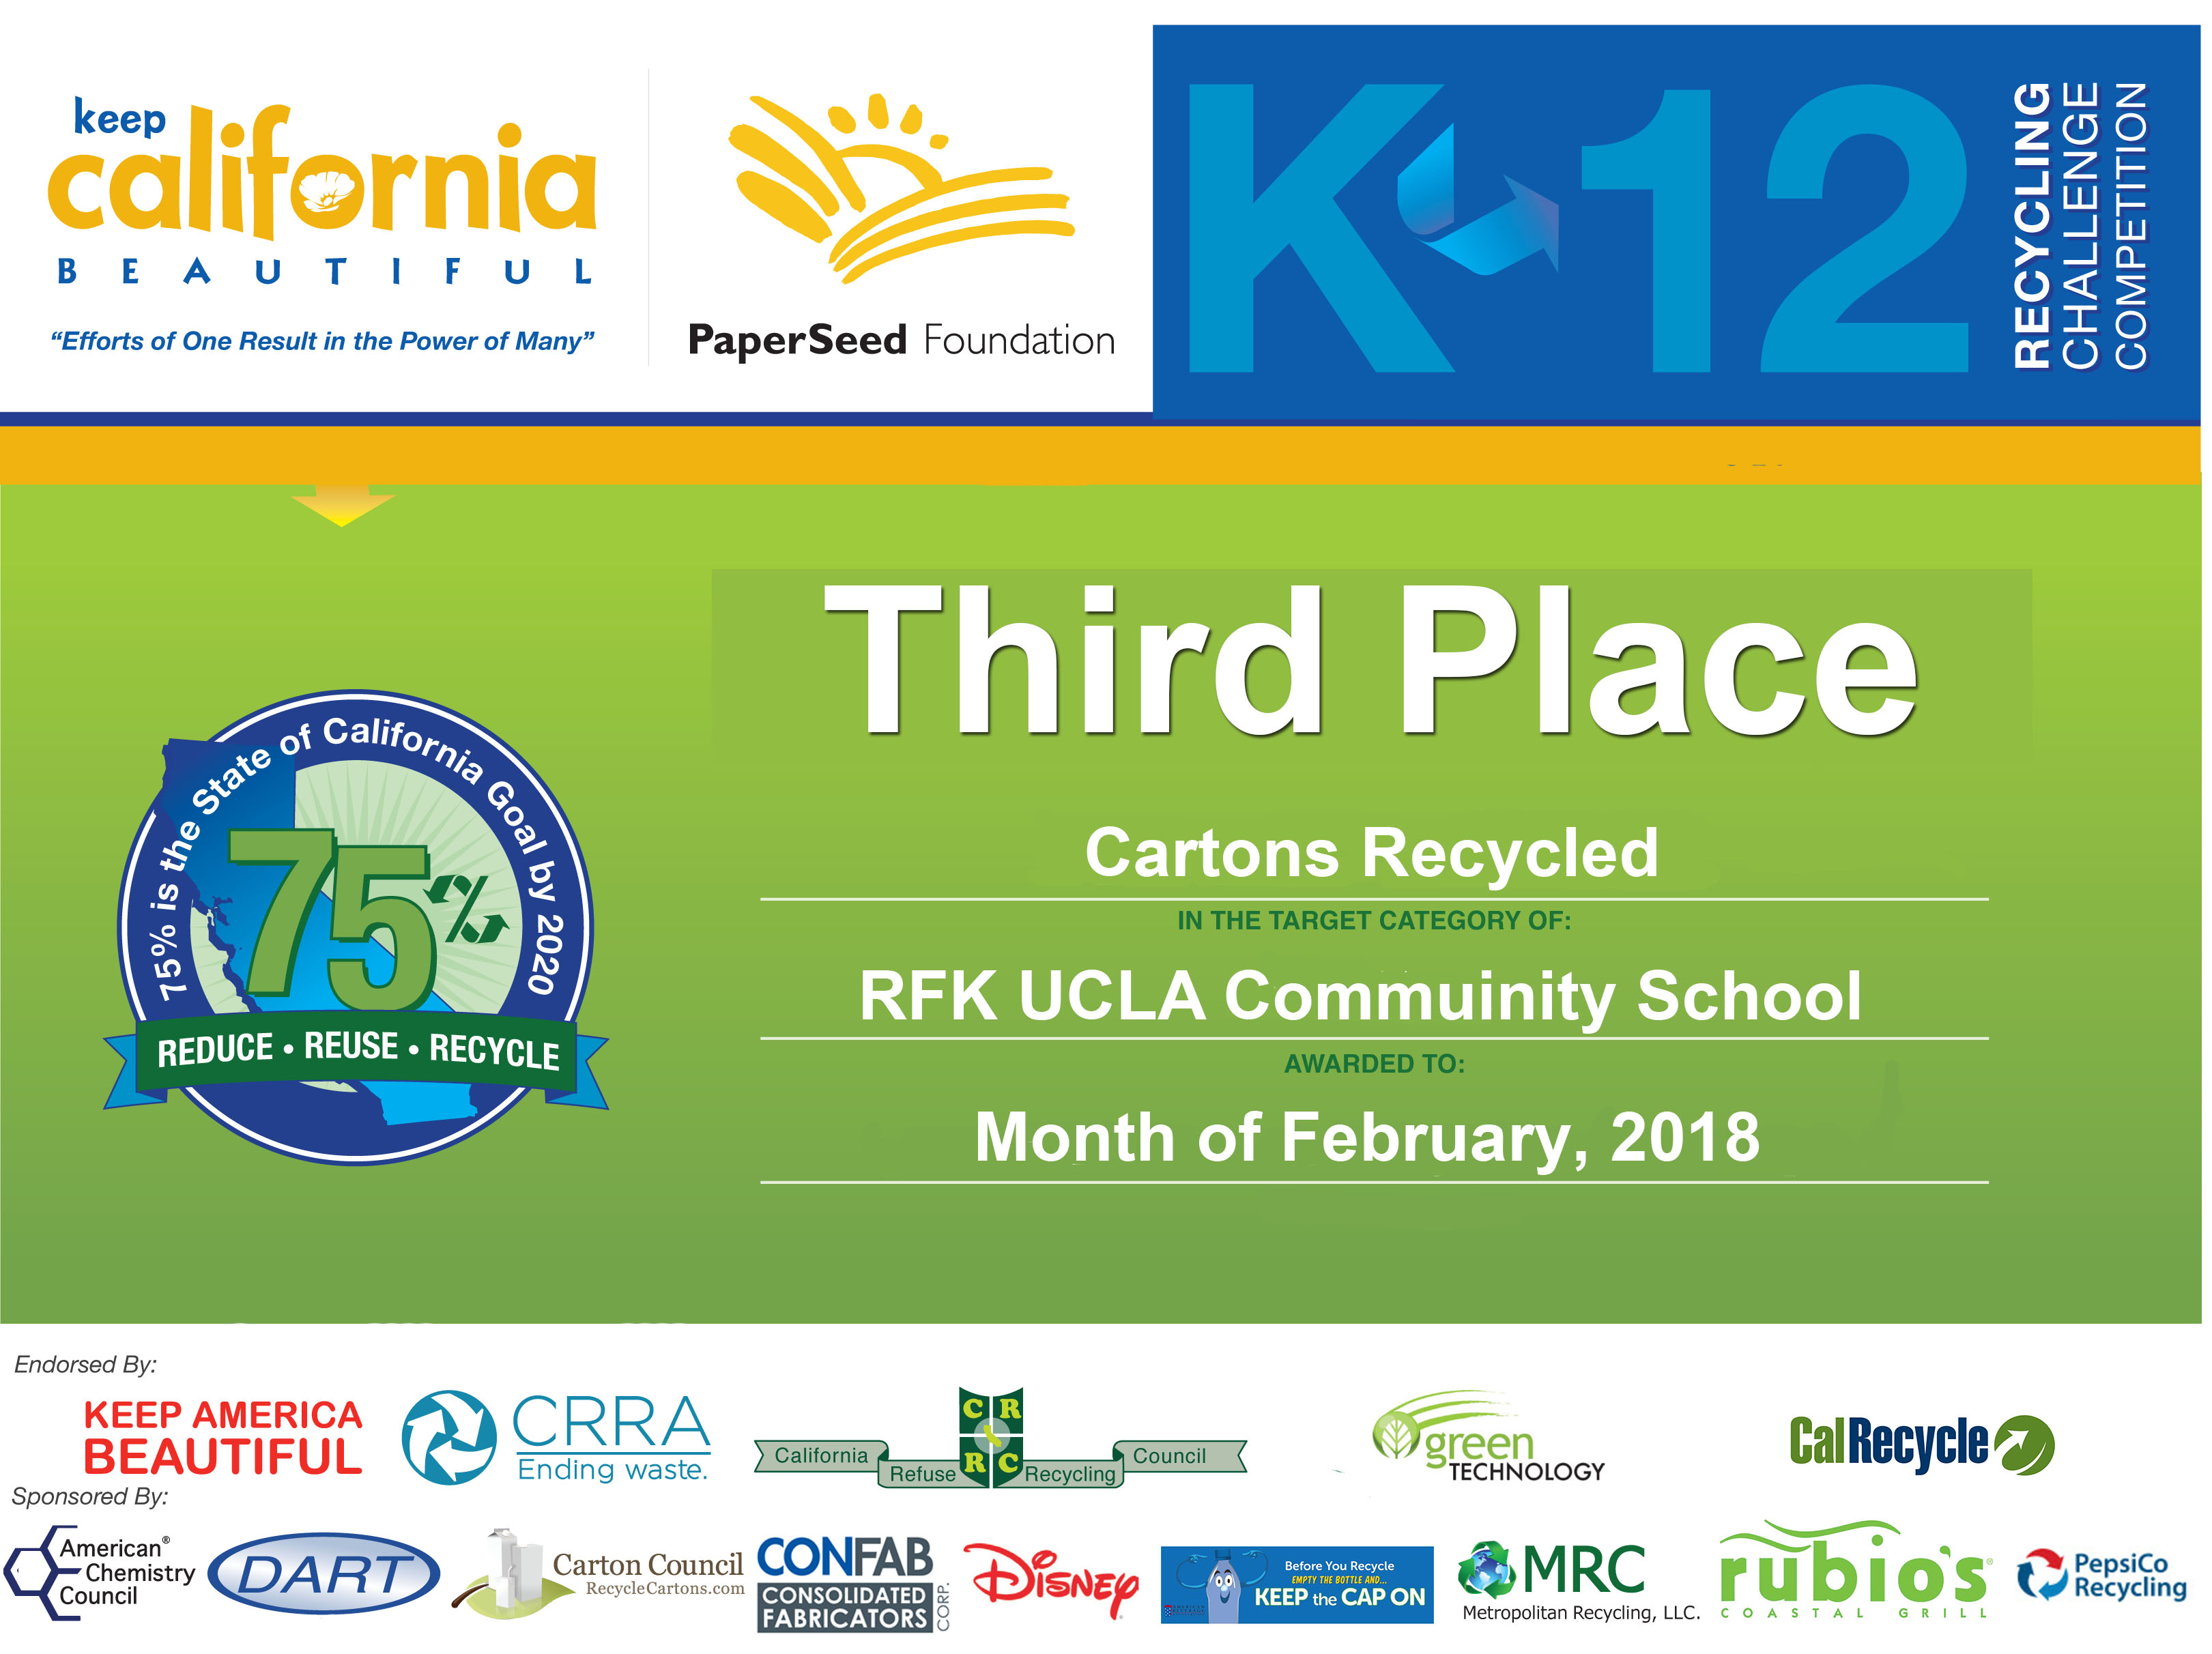 RFK UCLA Community School- Cartons Recycled 2018 3rd Place